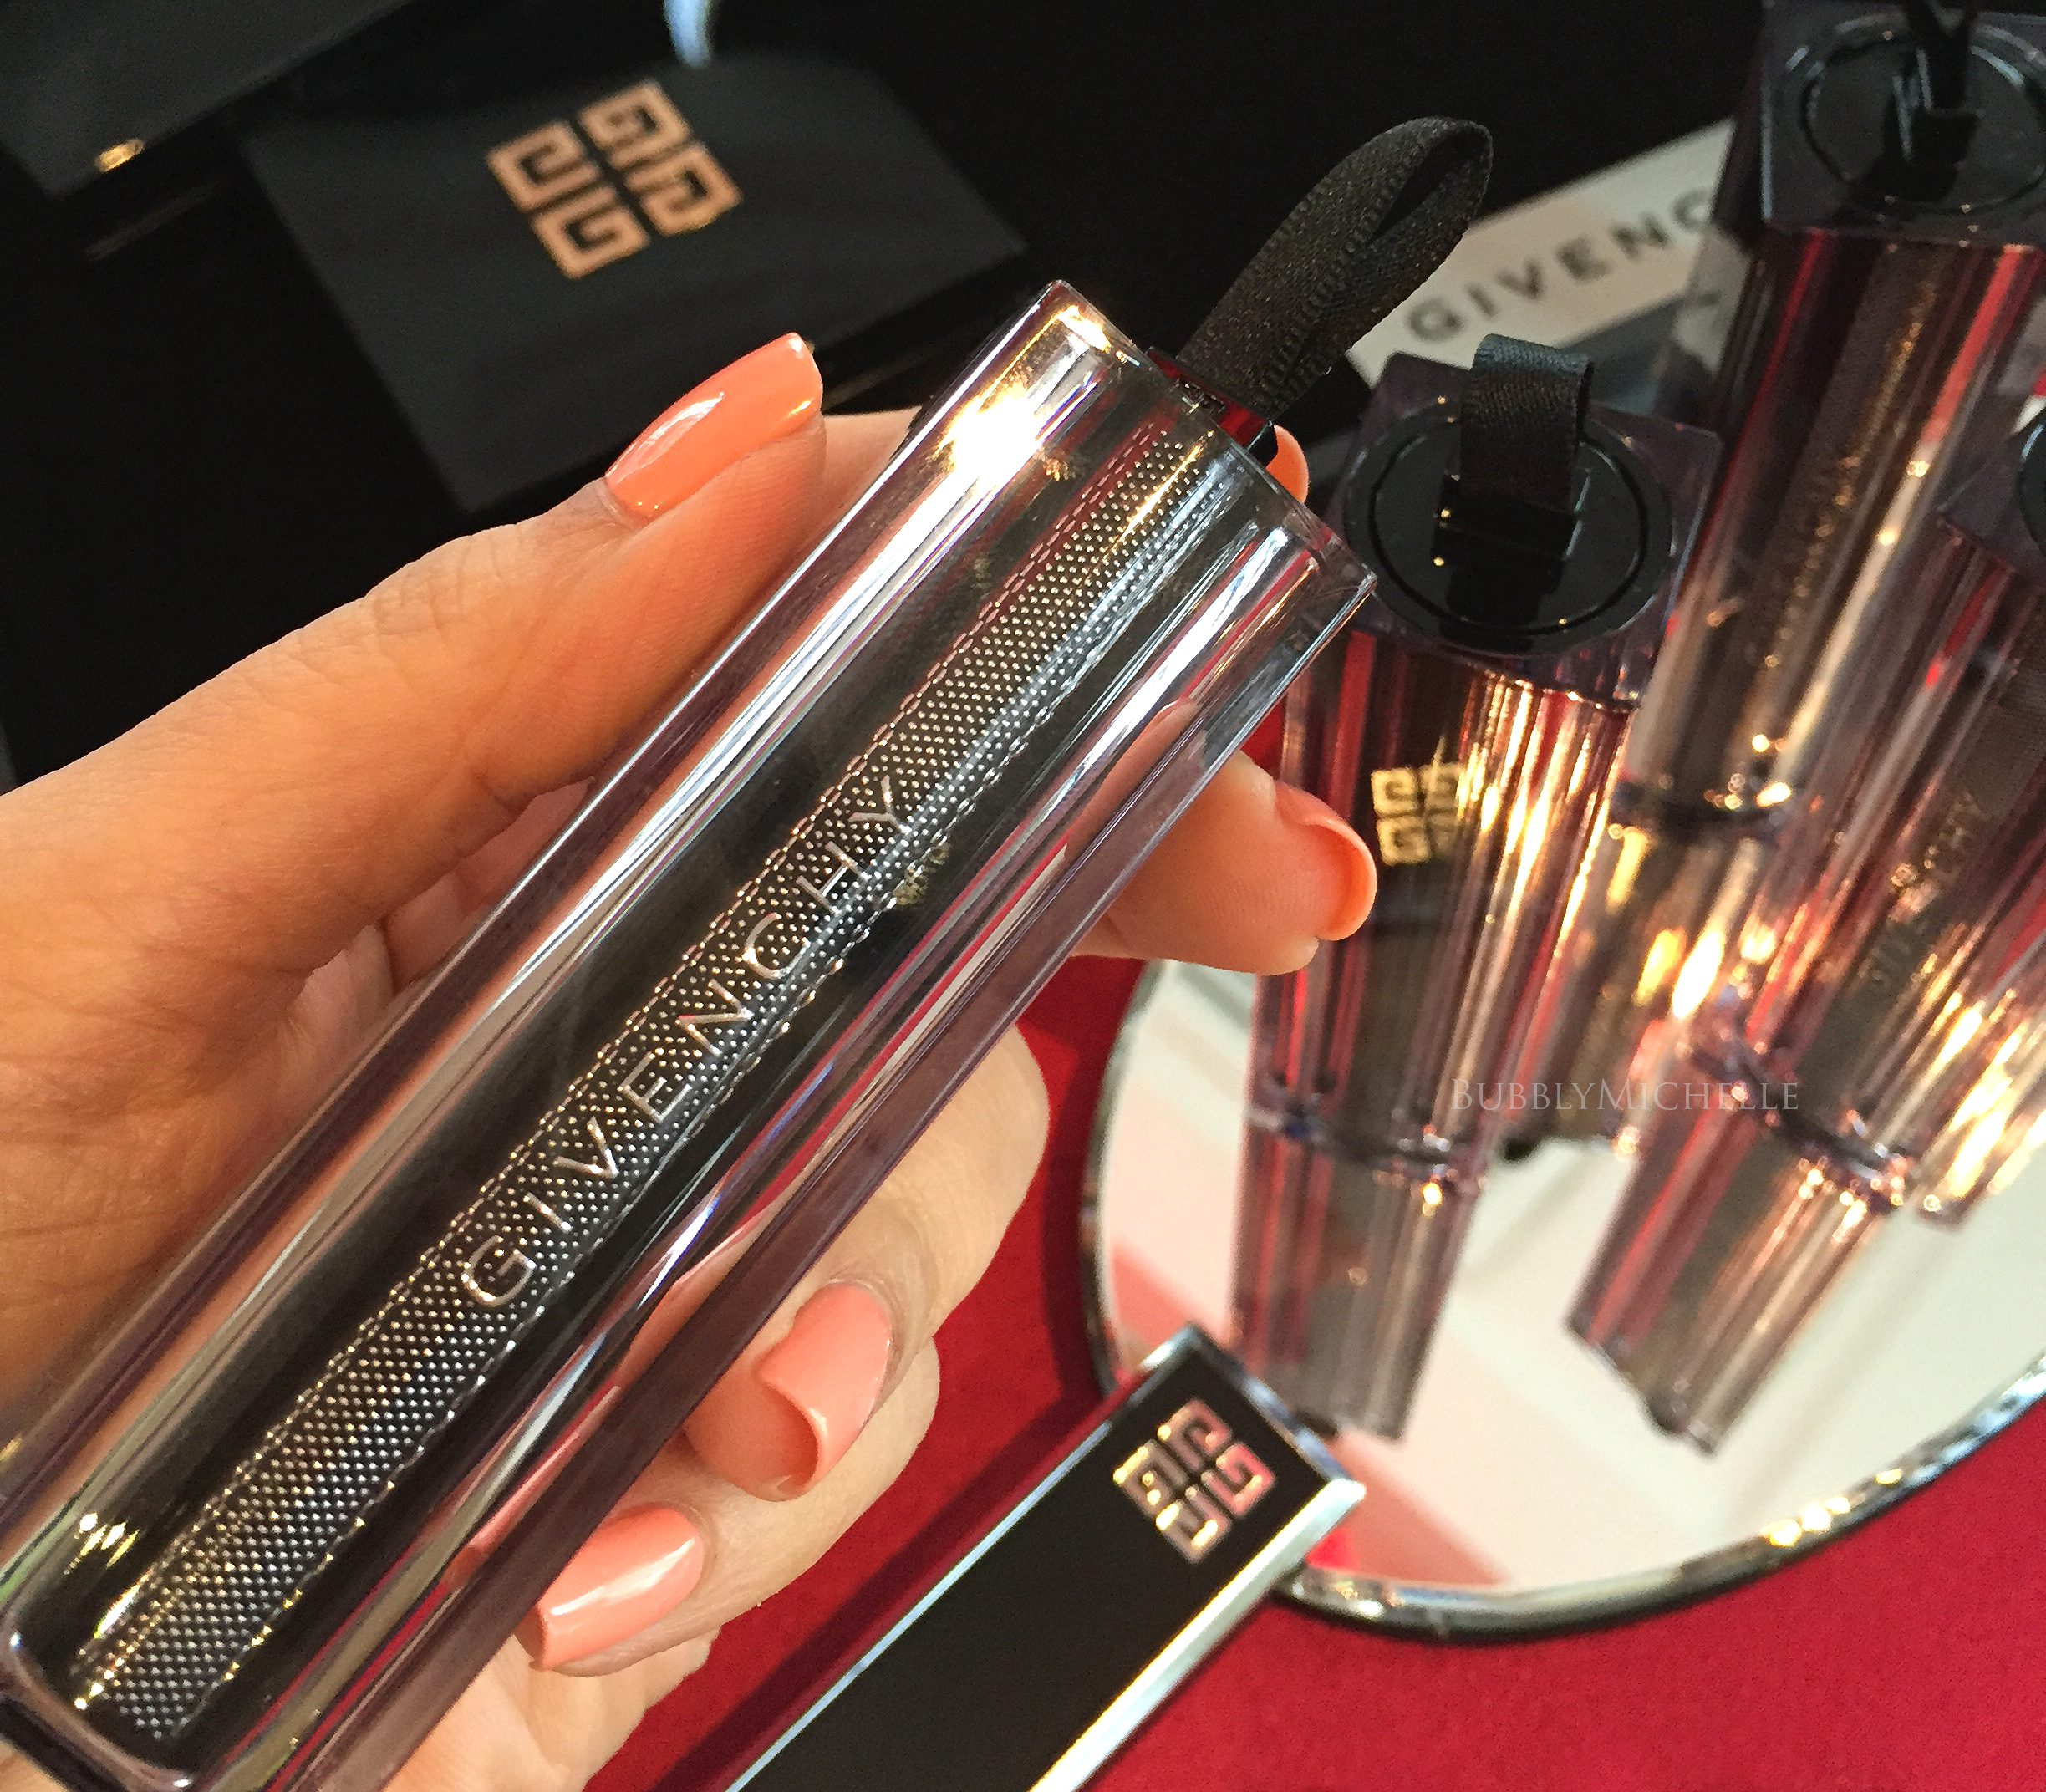 Givenchy les saisons cruise collection 2016 preview photos swatches bubbly michelle for Givenchy rouge miroir lipstick